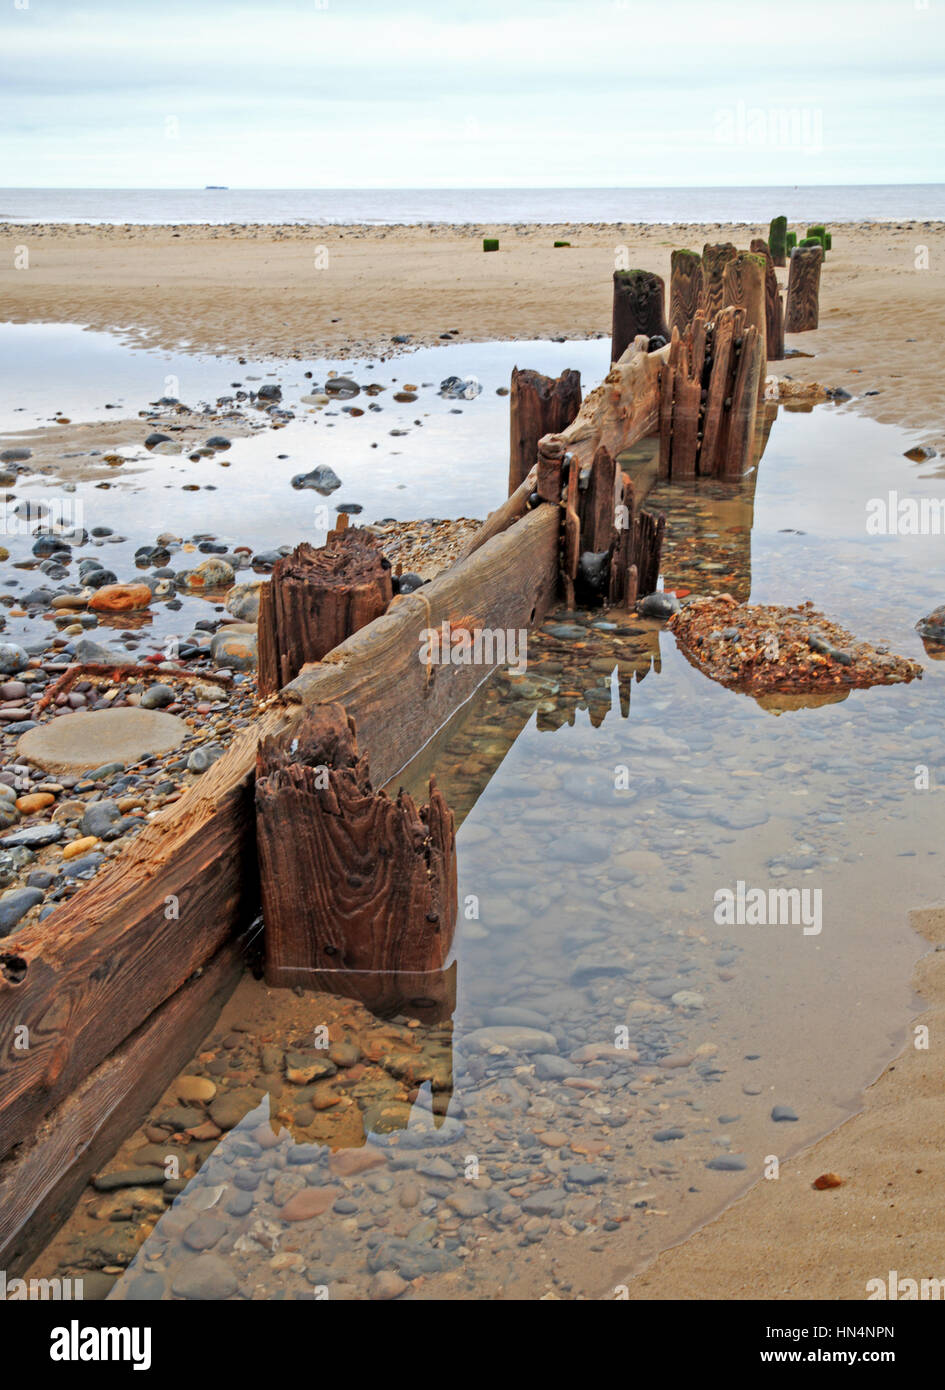 An old eroded wooden breakwater on the beach at Mundesley, Norfolk, England, United Kingdom. - Stock Image